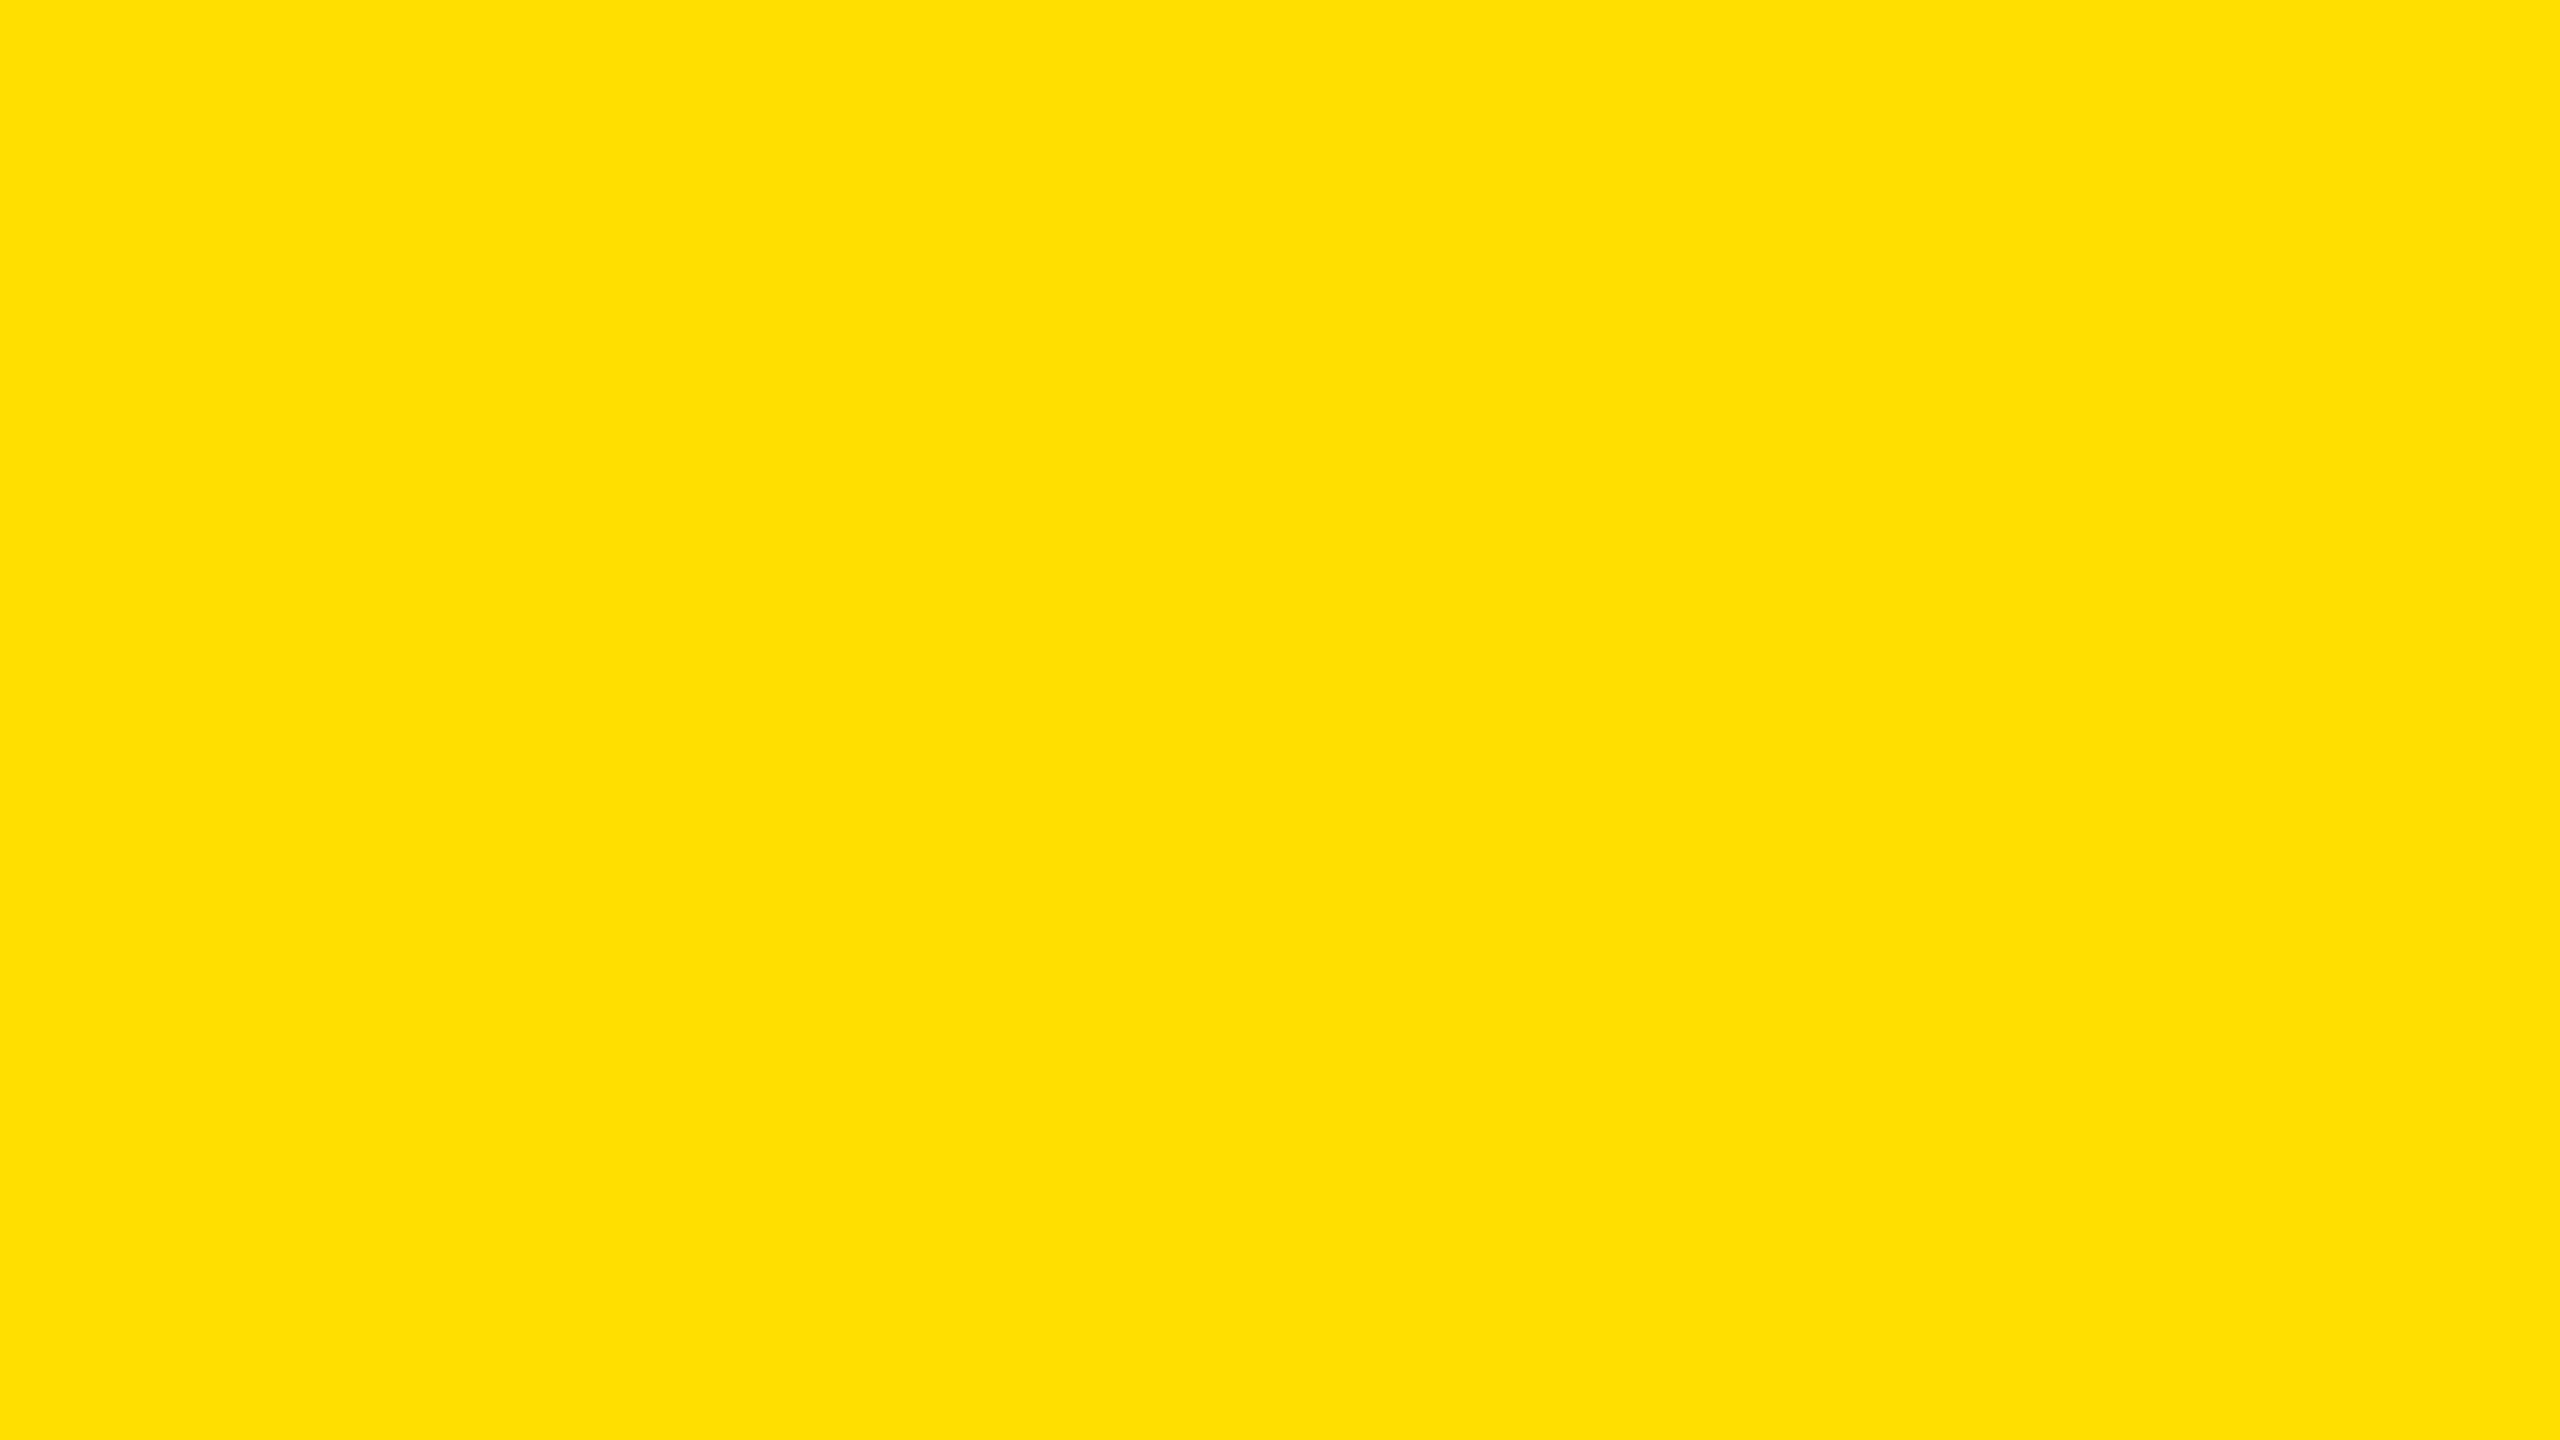 2560x1440 Yellow Pantone Solid Color Background